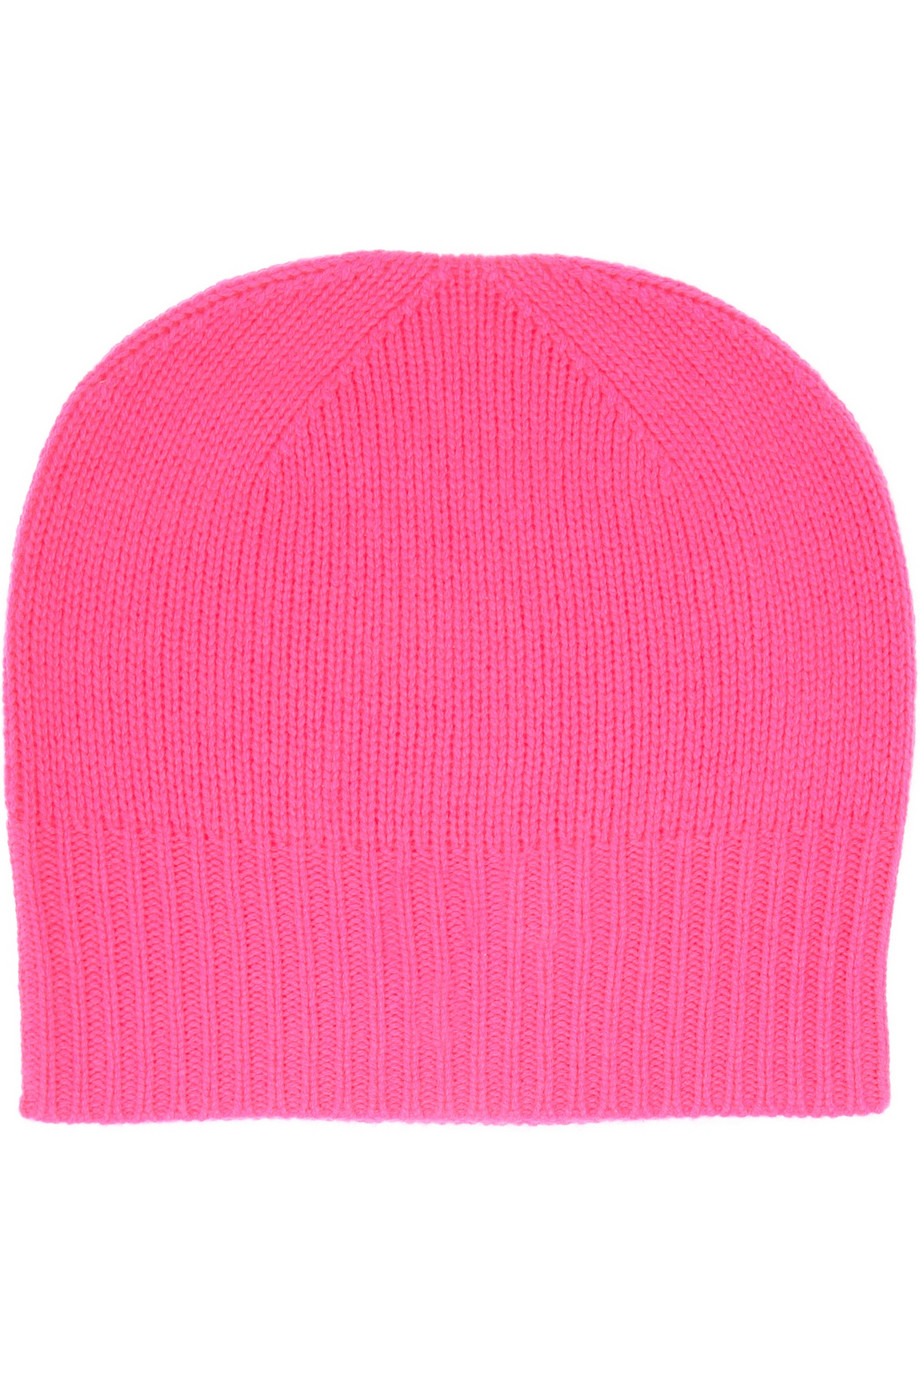 Madeleine Thompson Hot Pink Cashmere Beanie